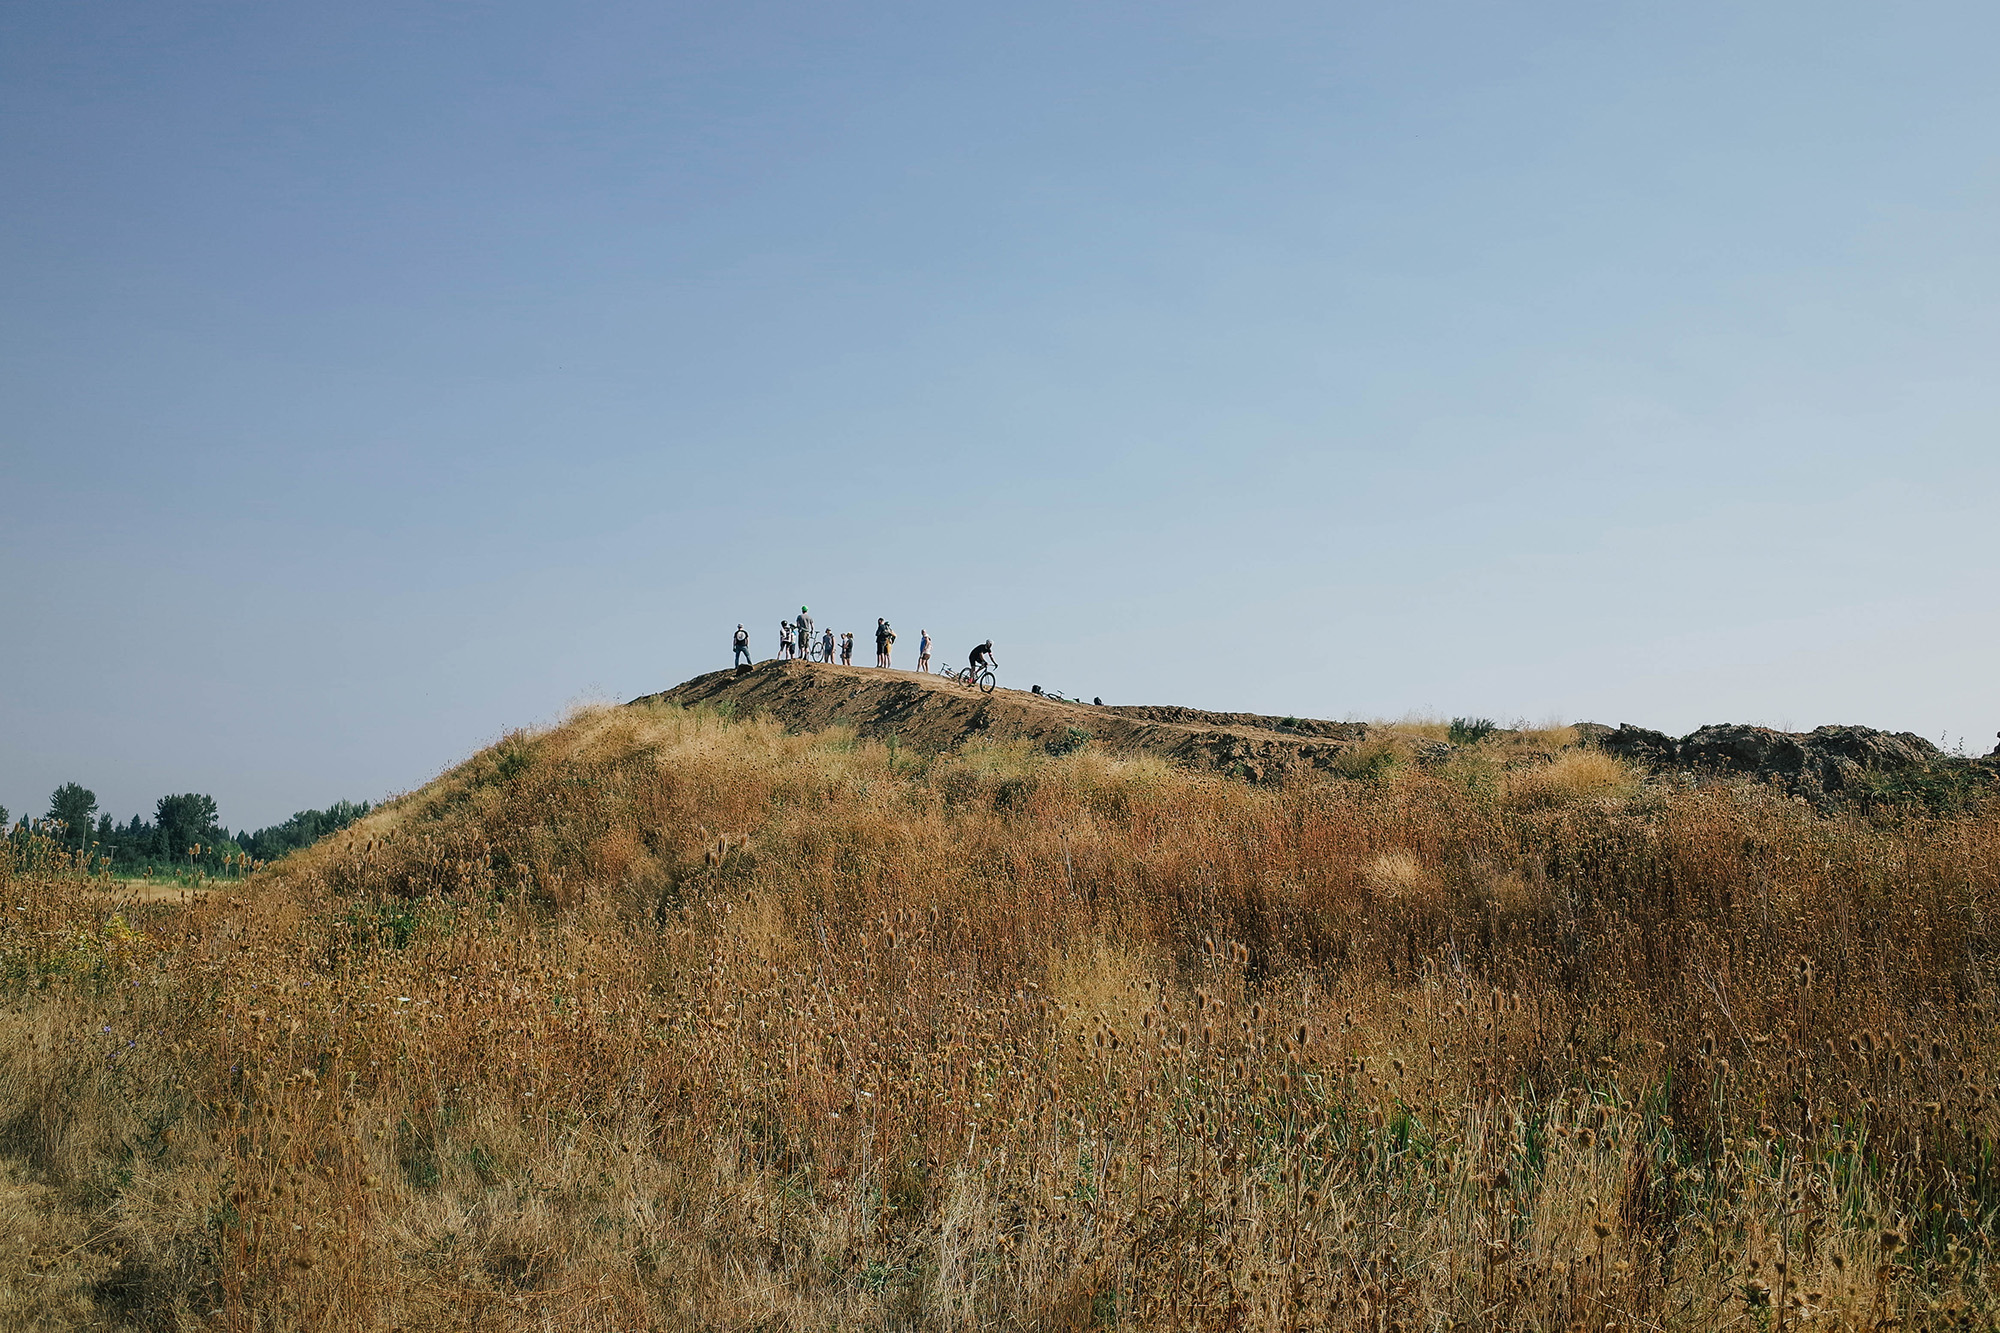 If that isn't called heckle hill, it should be. Those guys were brutal up there!